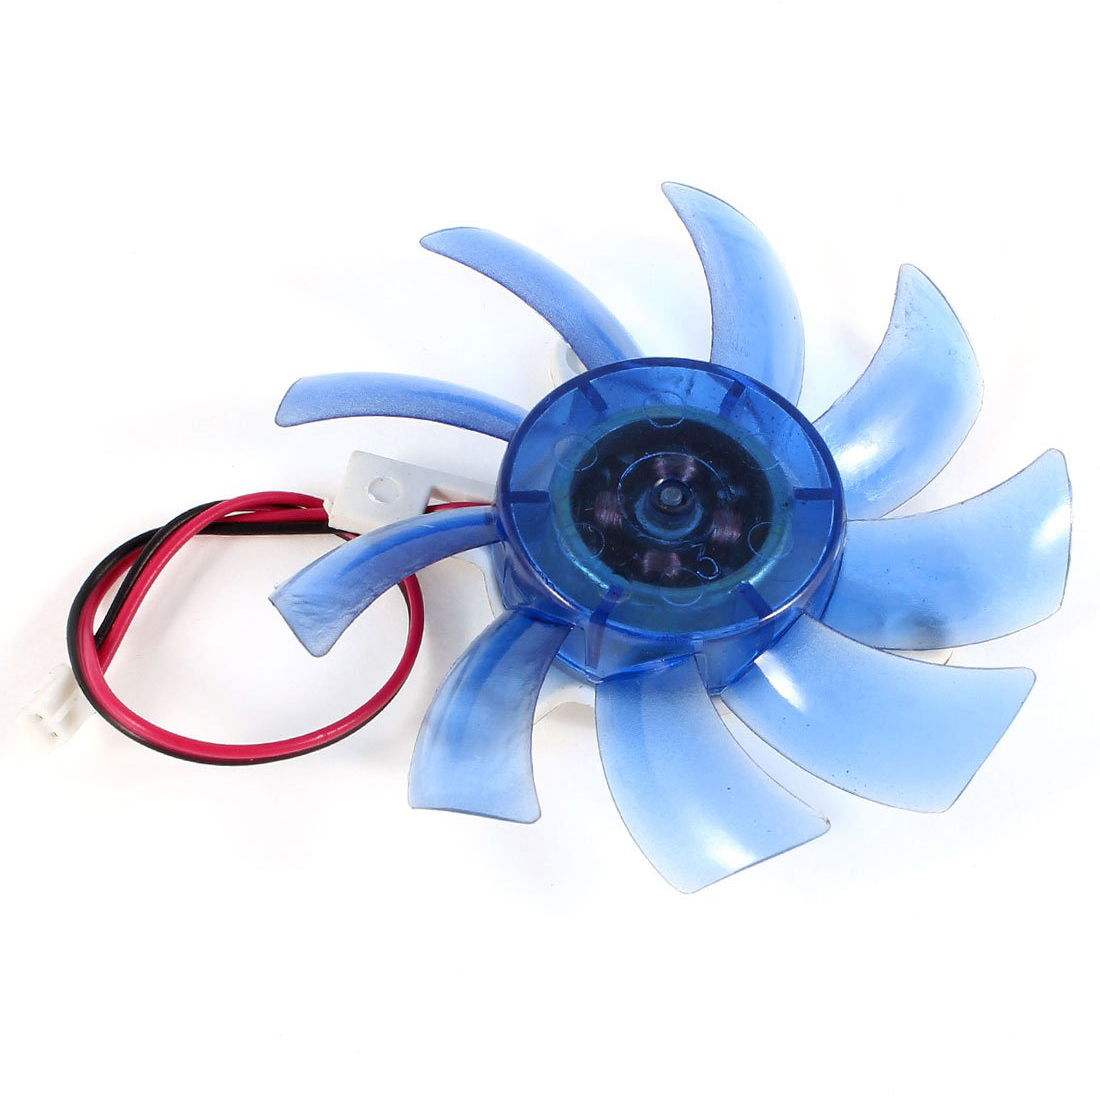 купить 75mm 12VDC Blue Plastic VGA Video Card Cooling Fan Cooler for Computer